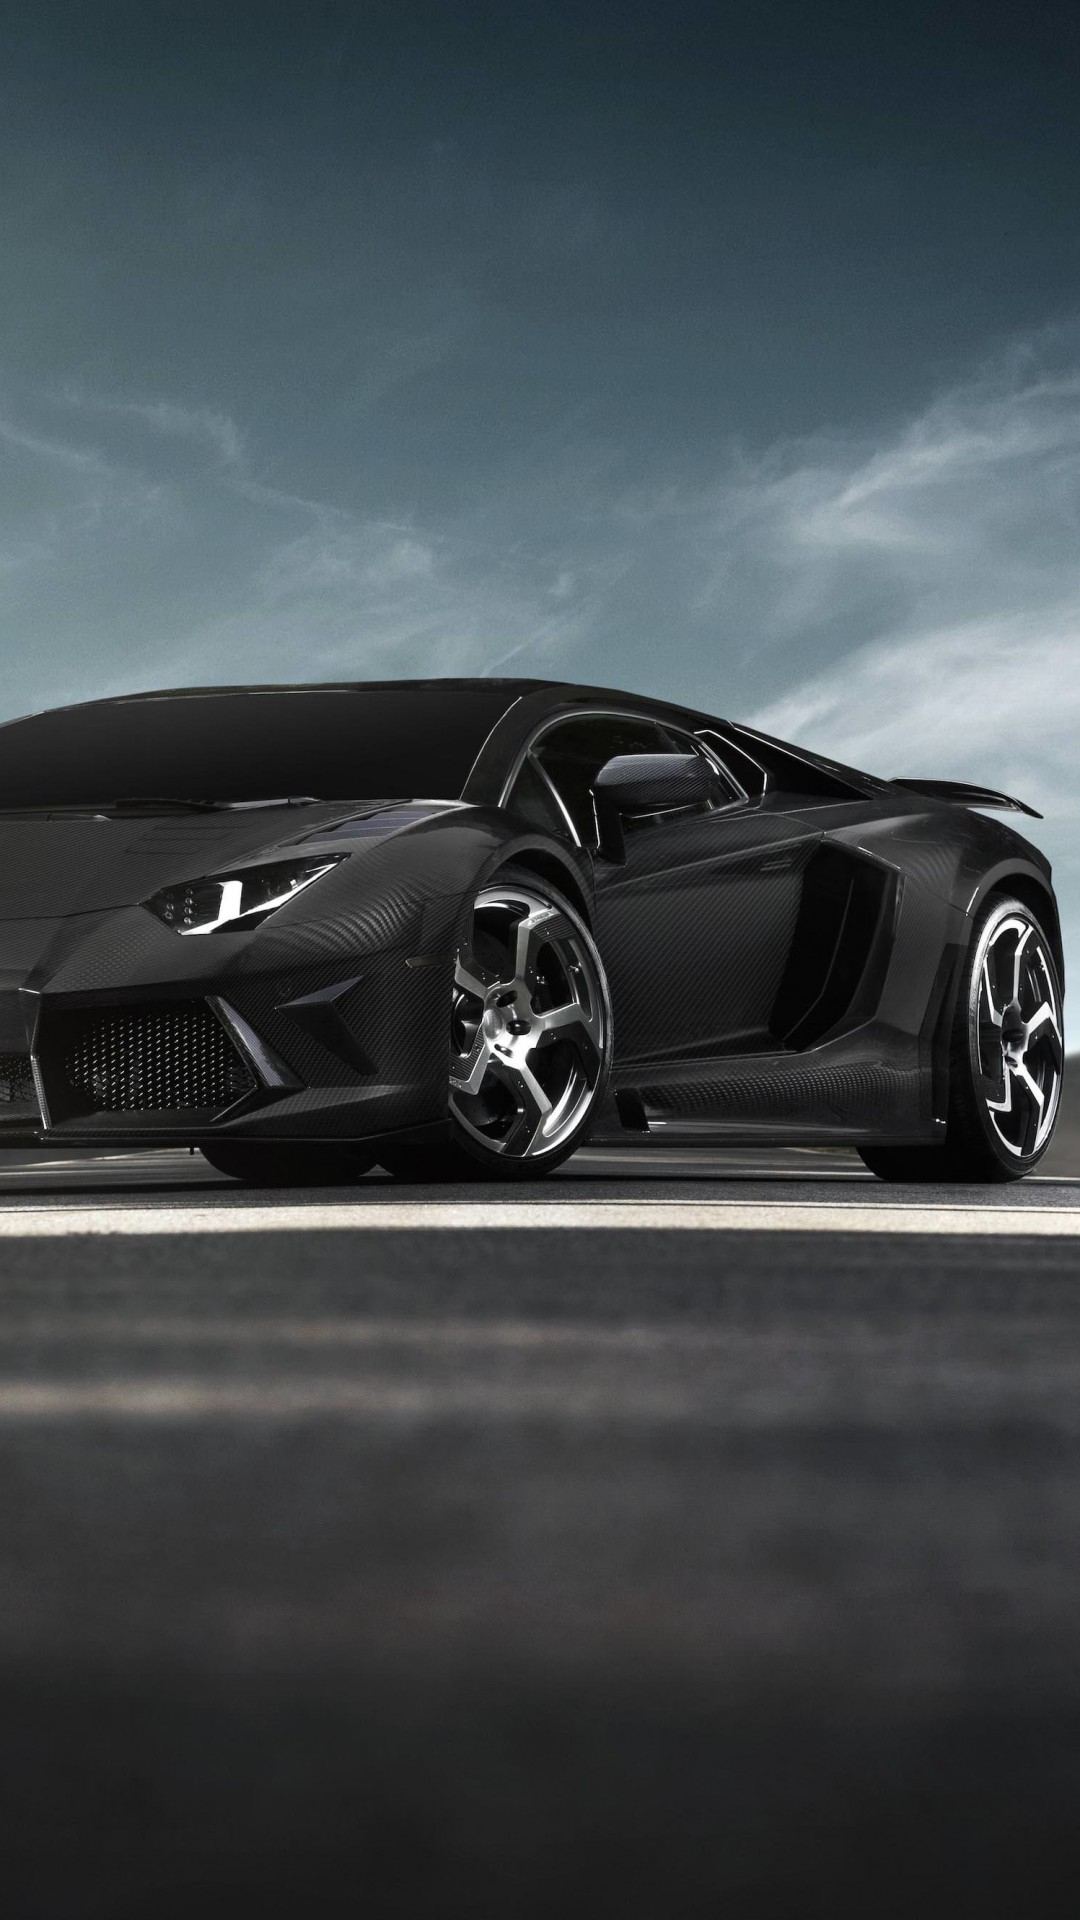 Mansory Carbonado Lamborghini Aventador LP700-4 Wallpaper for SONY Xperia Z1